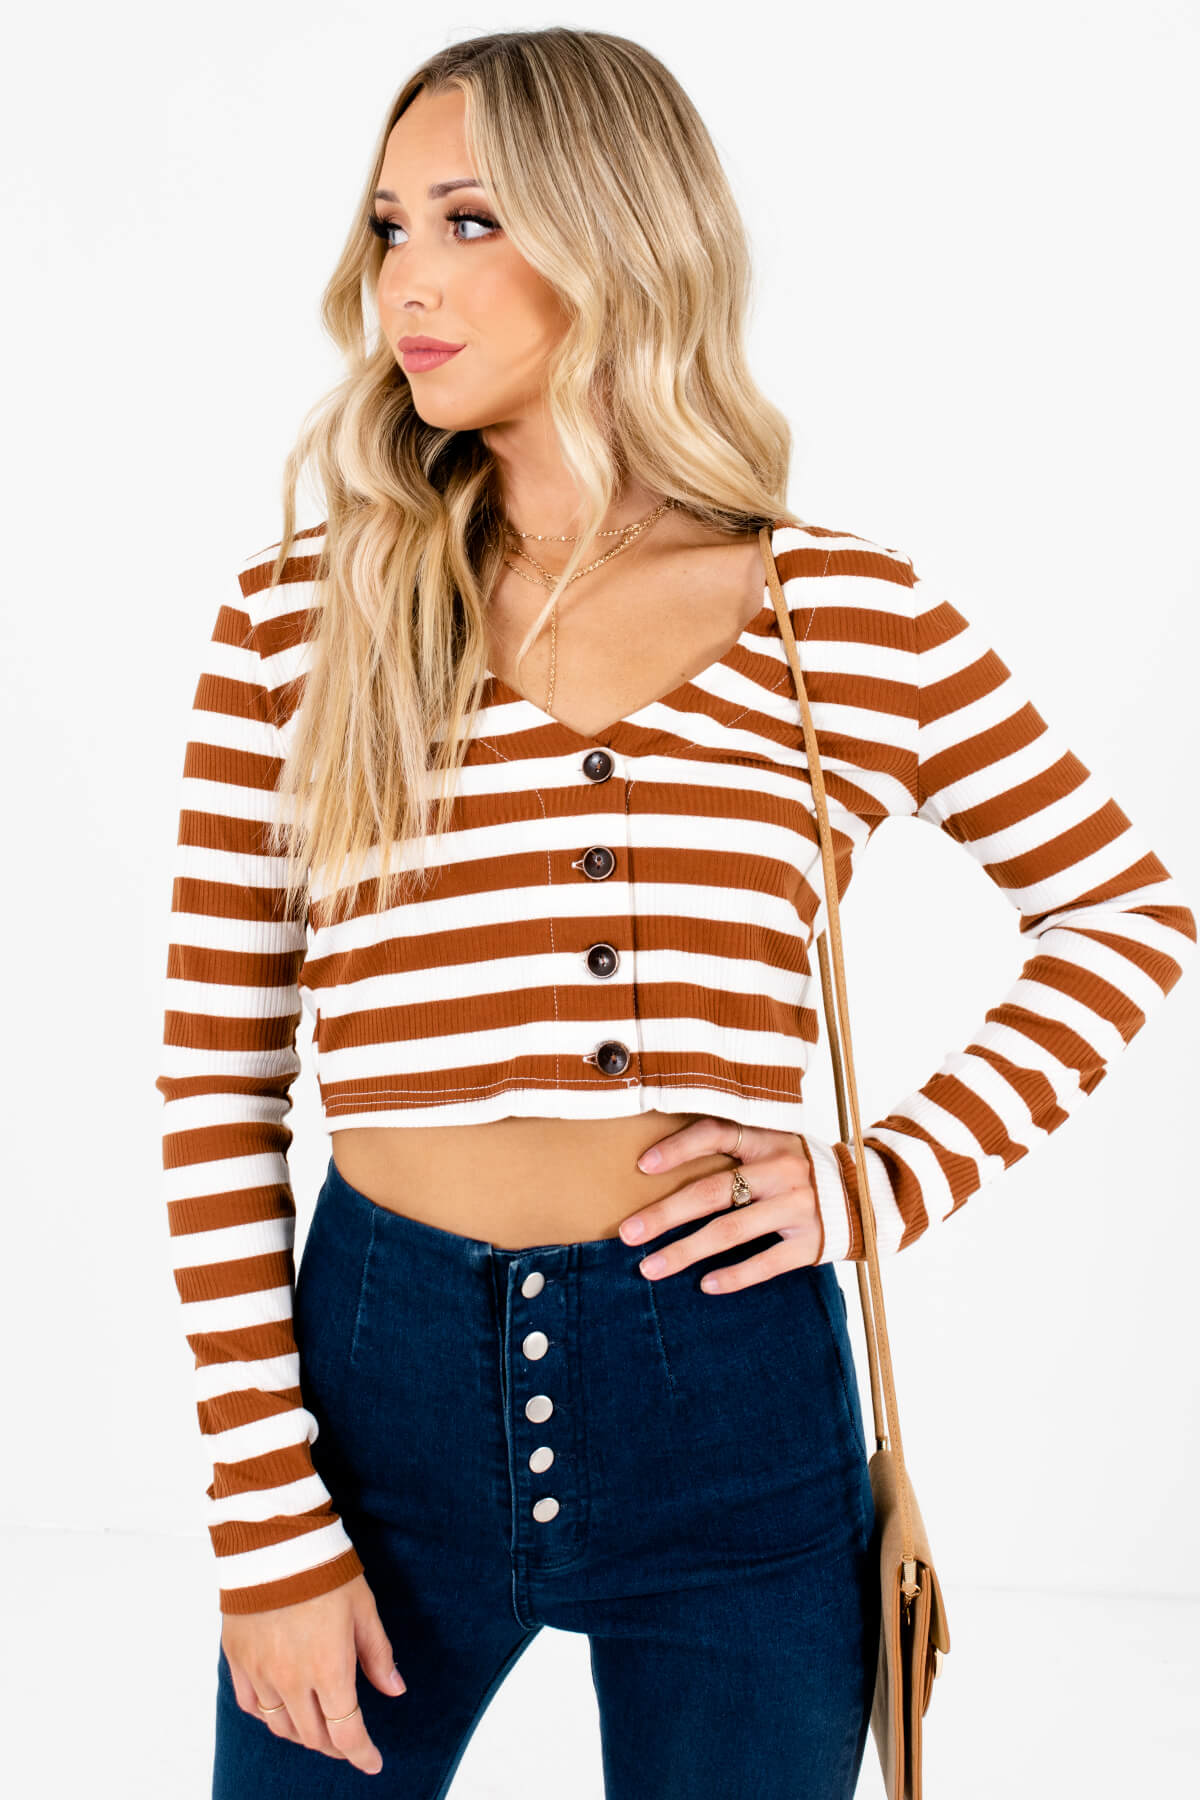 Rust Brown and White Striped Boutique Tops for Women